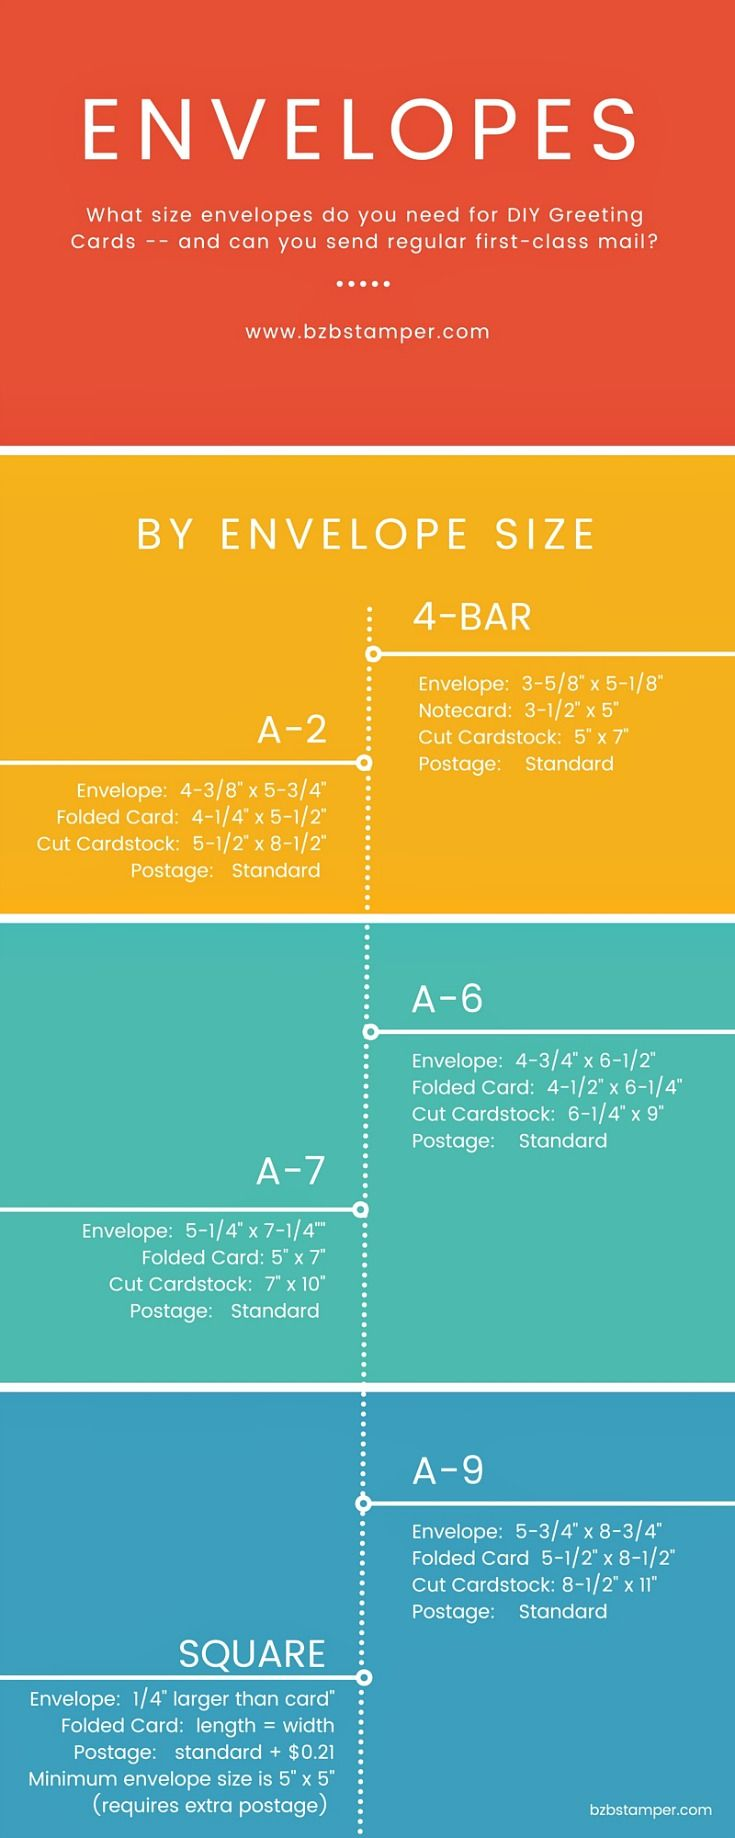 Envelopes for your diy greeting cards bzbstamper my blog infographic on envelope sizes chart for diy greeting cards ever wondered what size envelope to use on your diy greeting cards this handy dandy chart will m4hsunfo